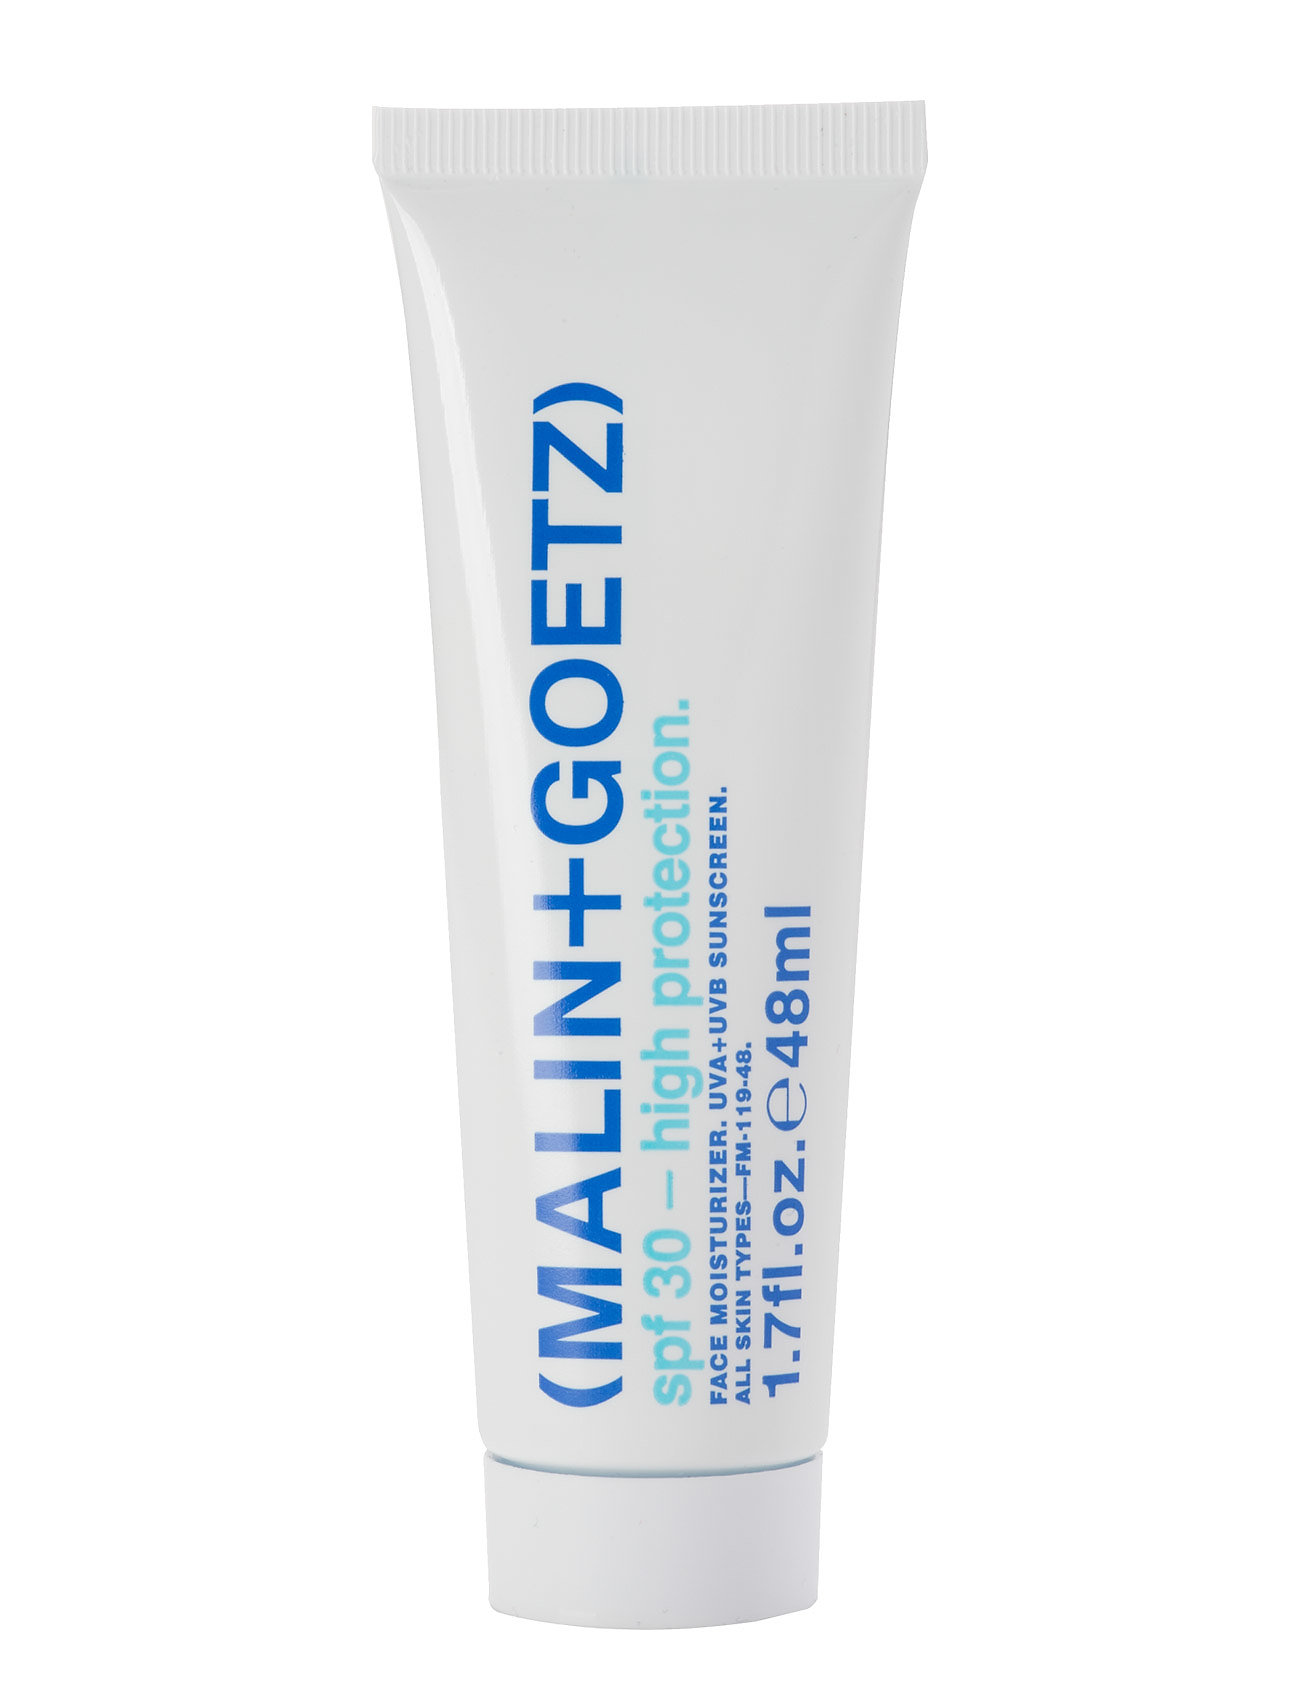 Image of Spf 30 - High Protection Beauty MEN Skin Care Face Face Nude Malin+Goetz (3421361277)